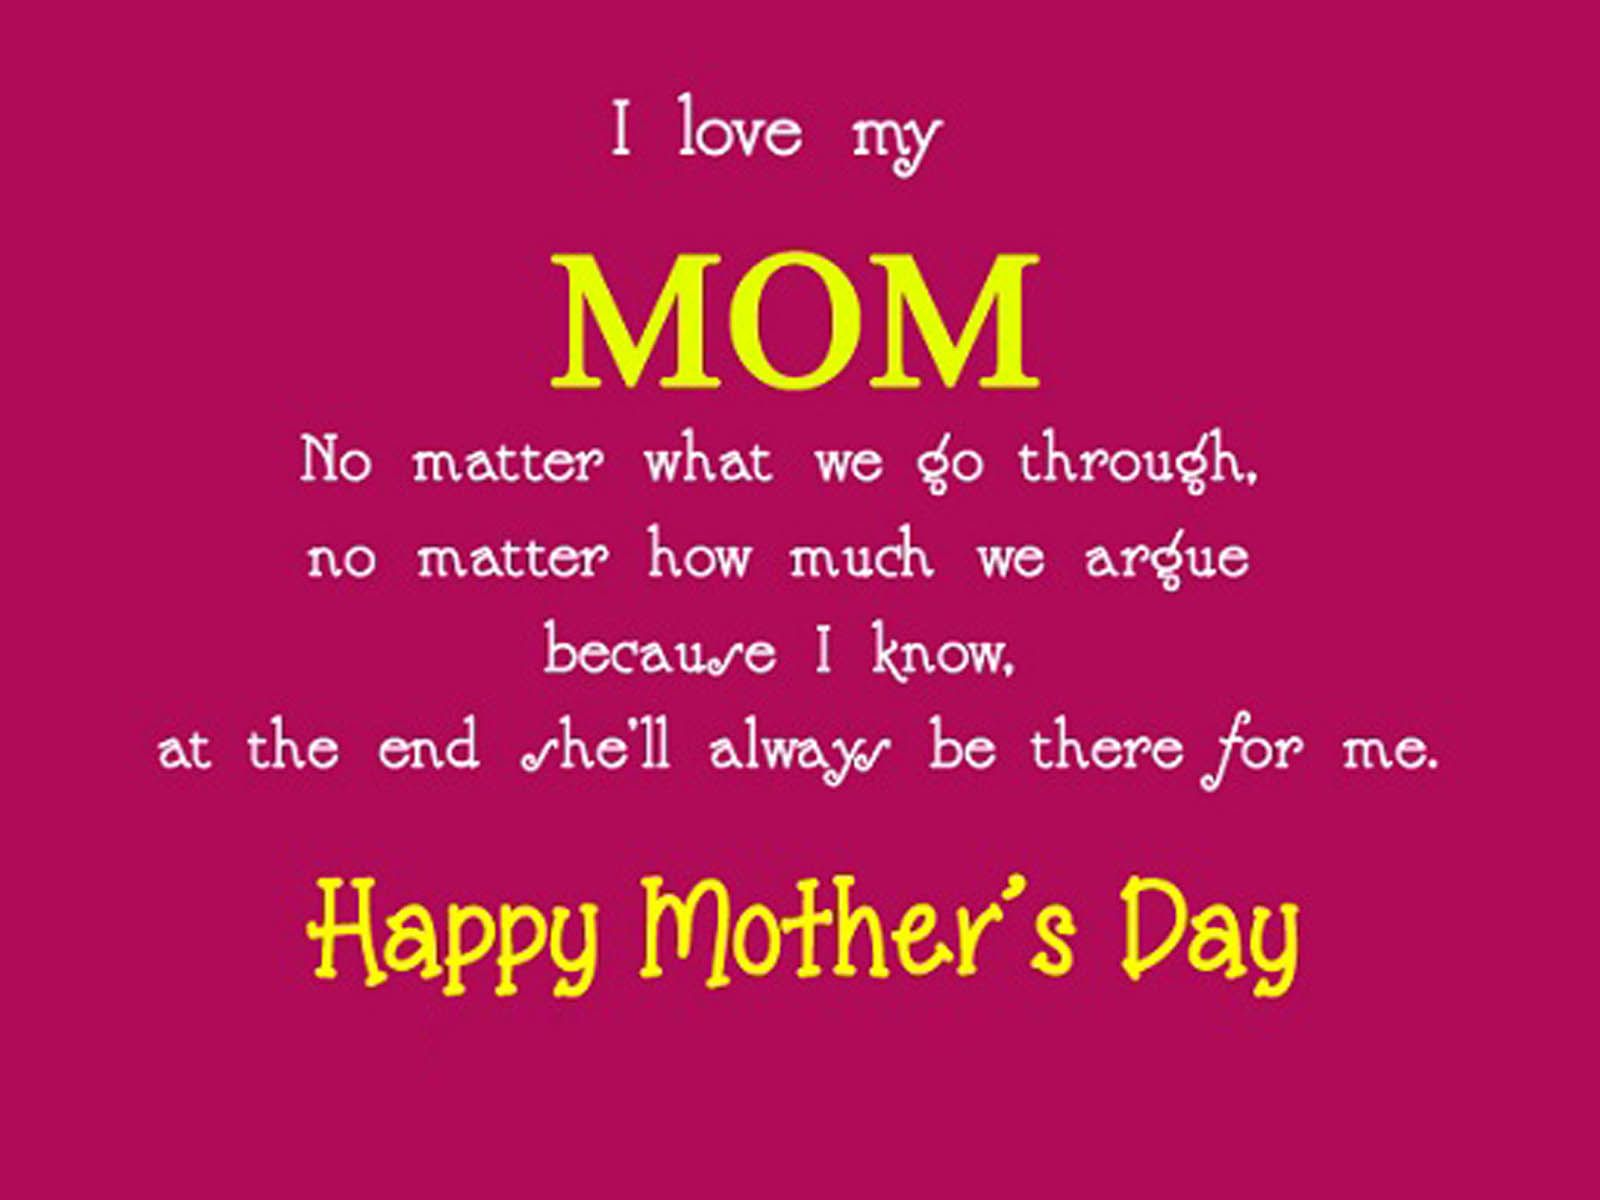 Happy Mother S Day Quotes 2017 Http Www Quotesmeme Com Quotes Happy Mothers Day Quotes Happy Mothers Day Messages Mother Day Message Happy Mother Day Quotes